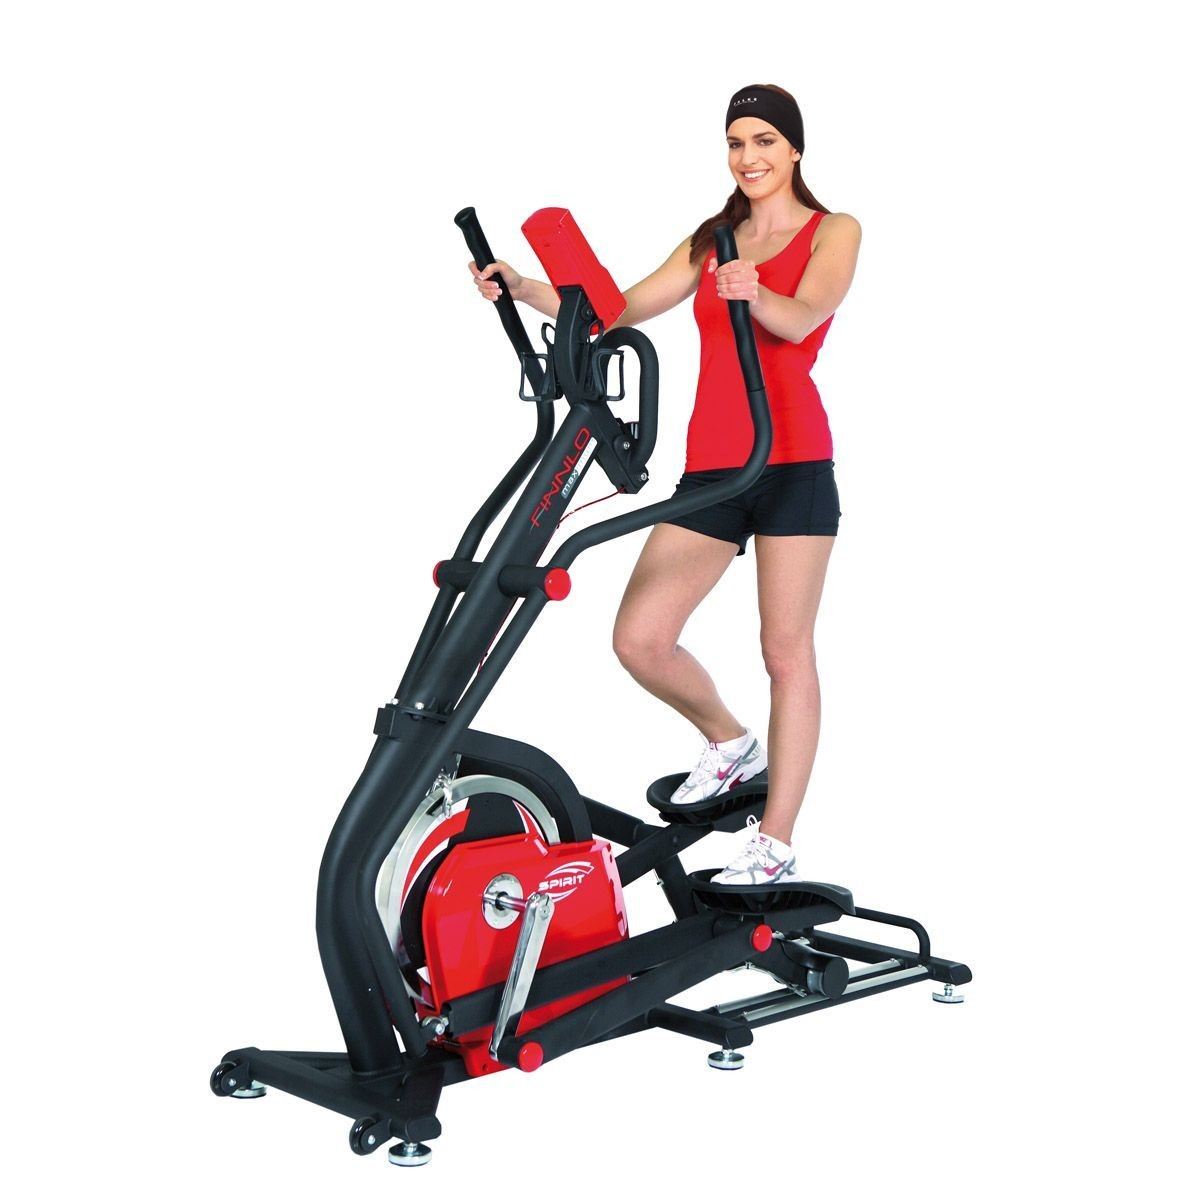 Finnlo Maximum Spirit E Glide Elliptical Trainer Buy Now